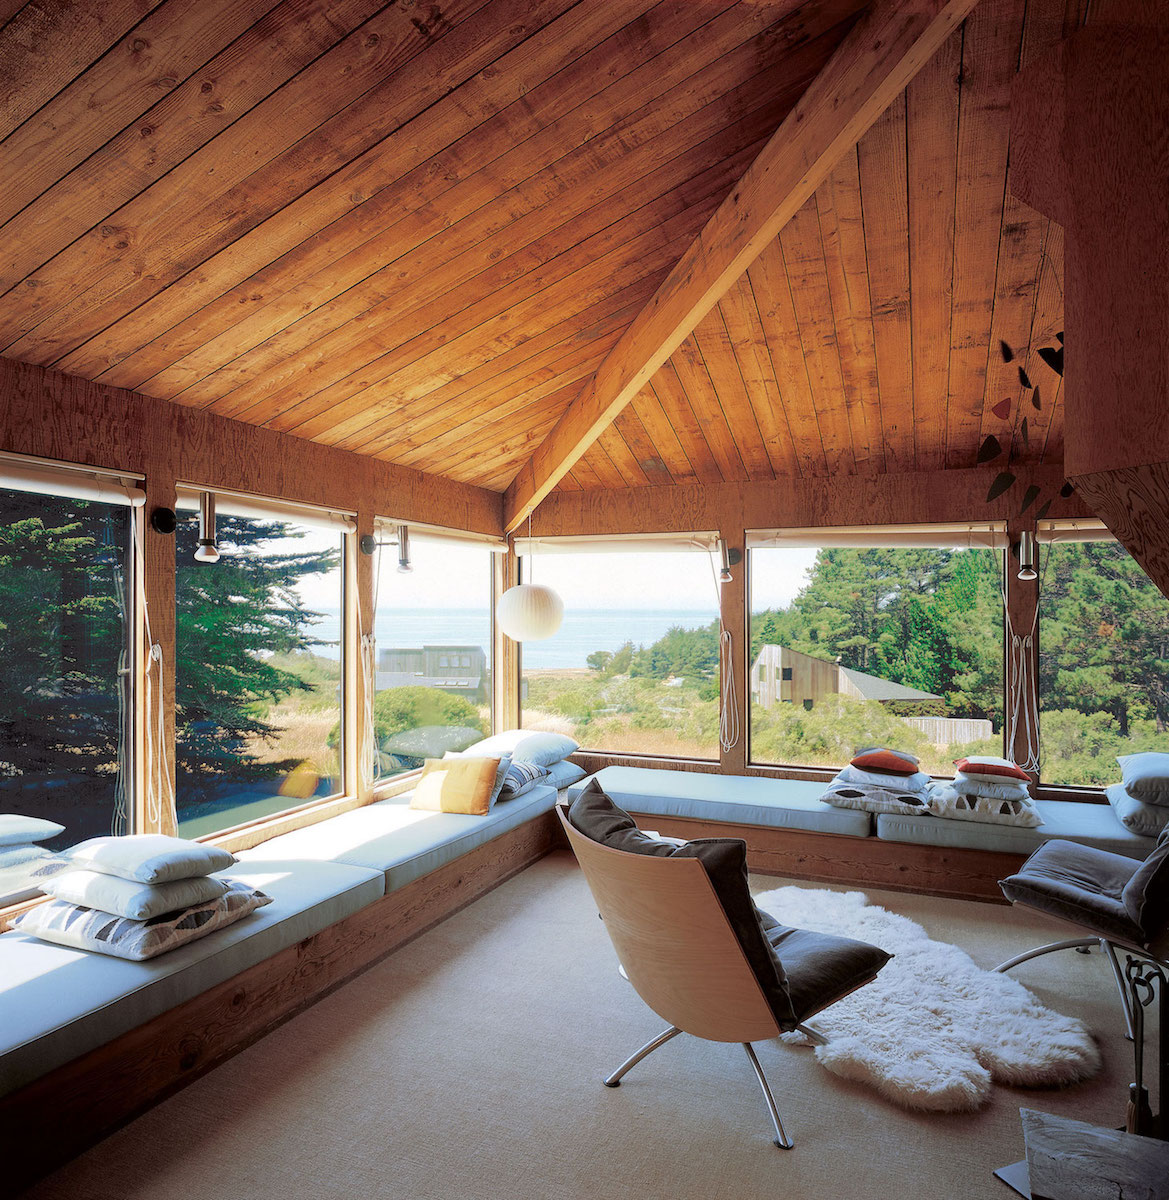 We favor window seats to help contact to the view. #searanch #bjorndesign_ca